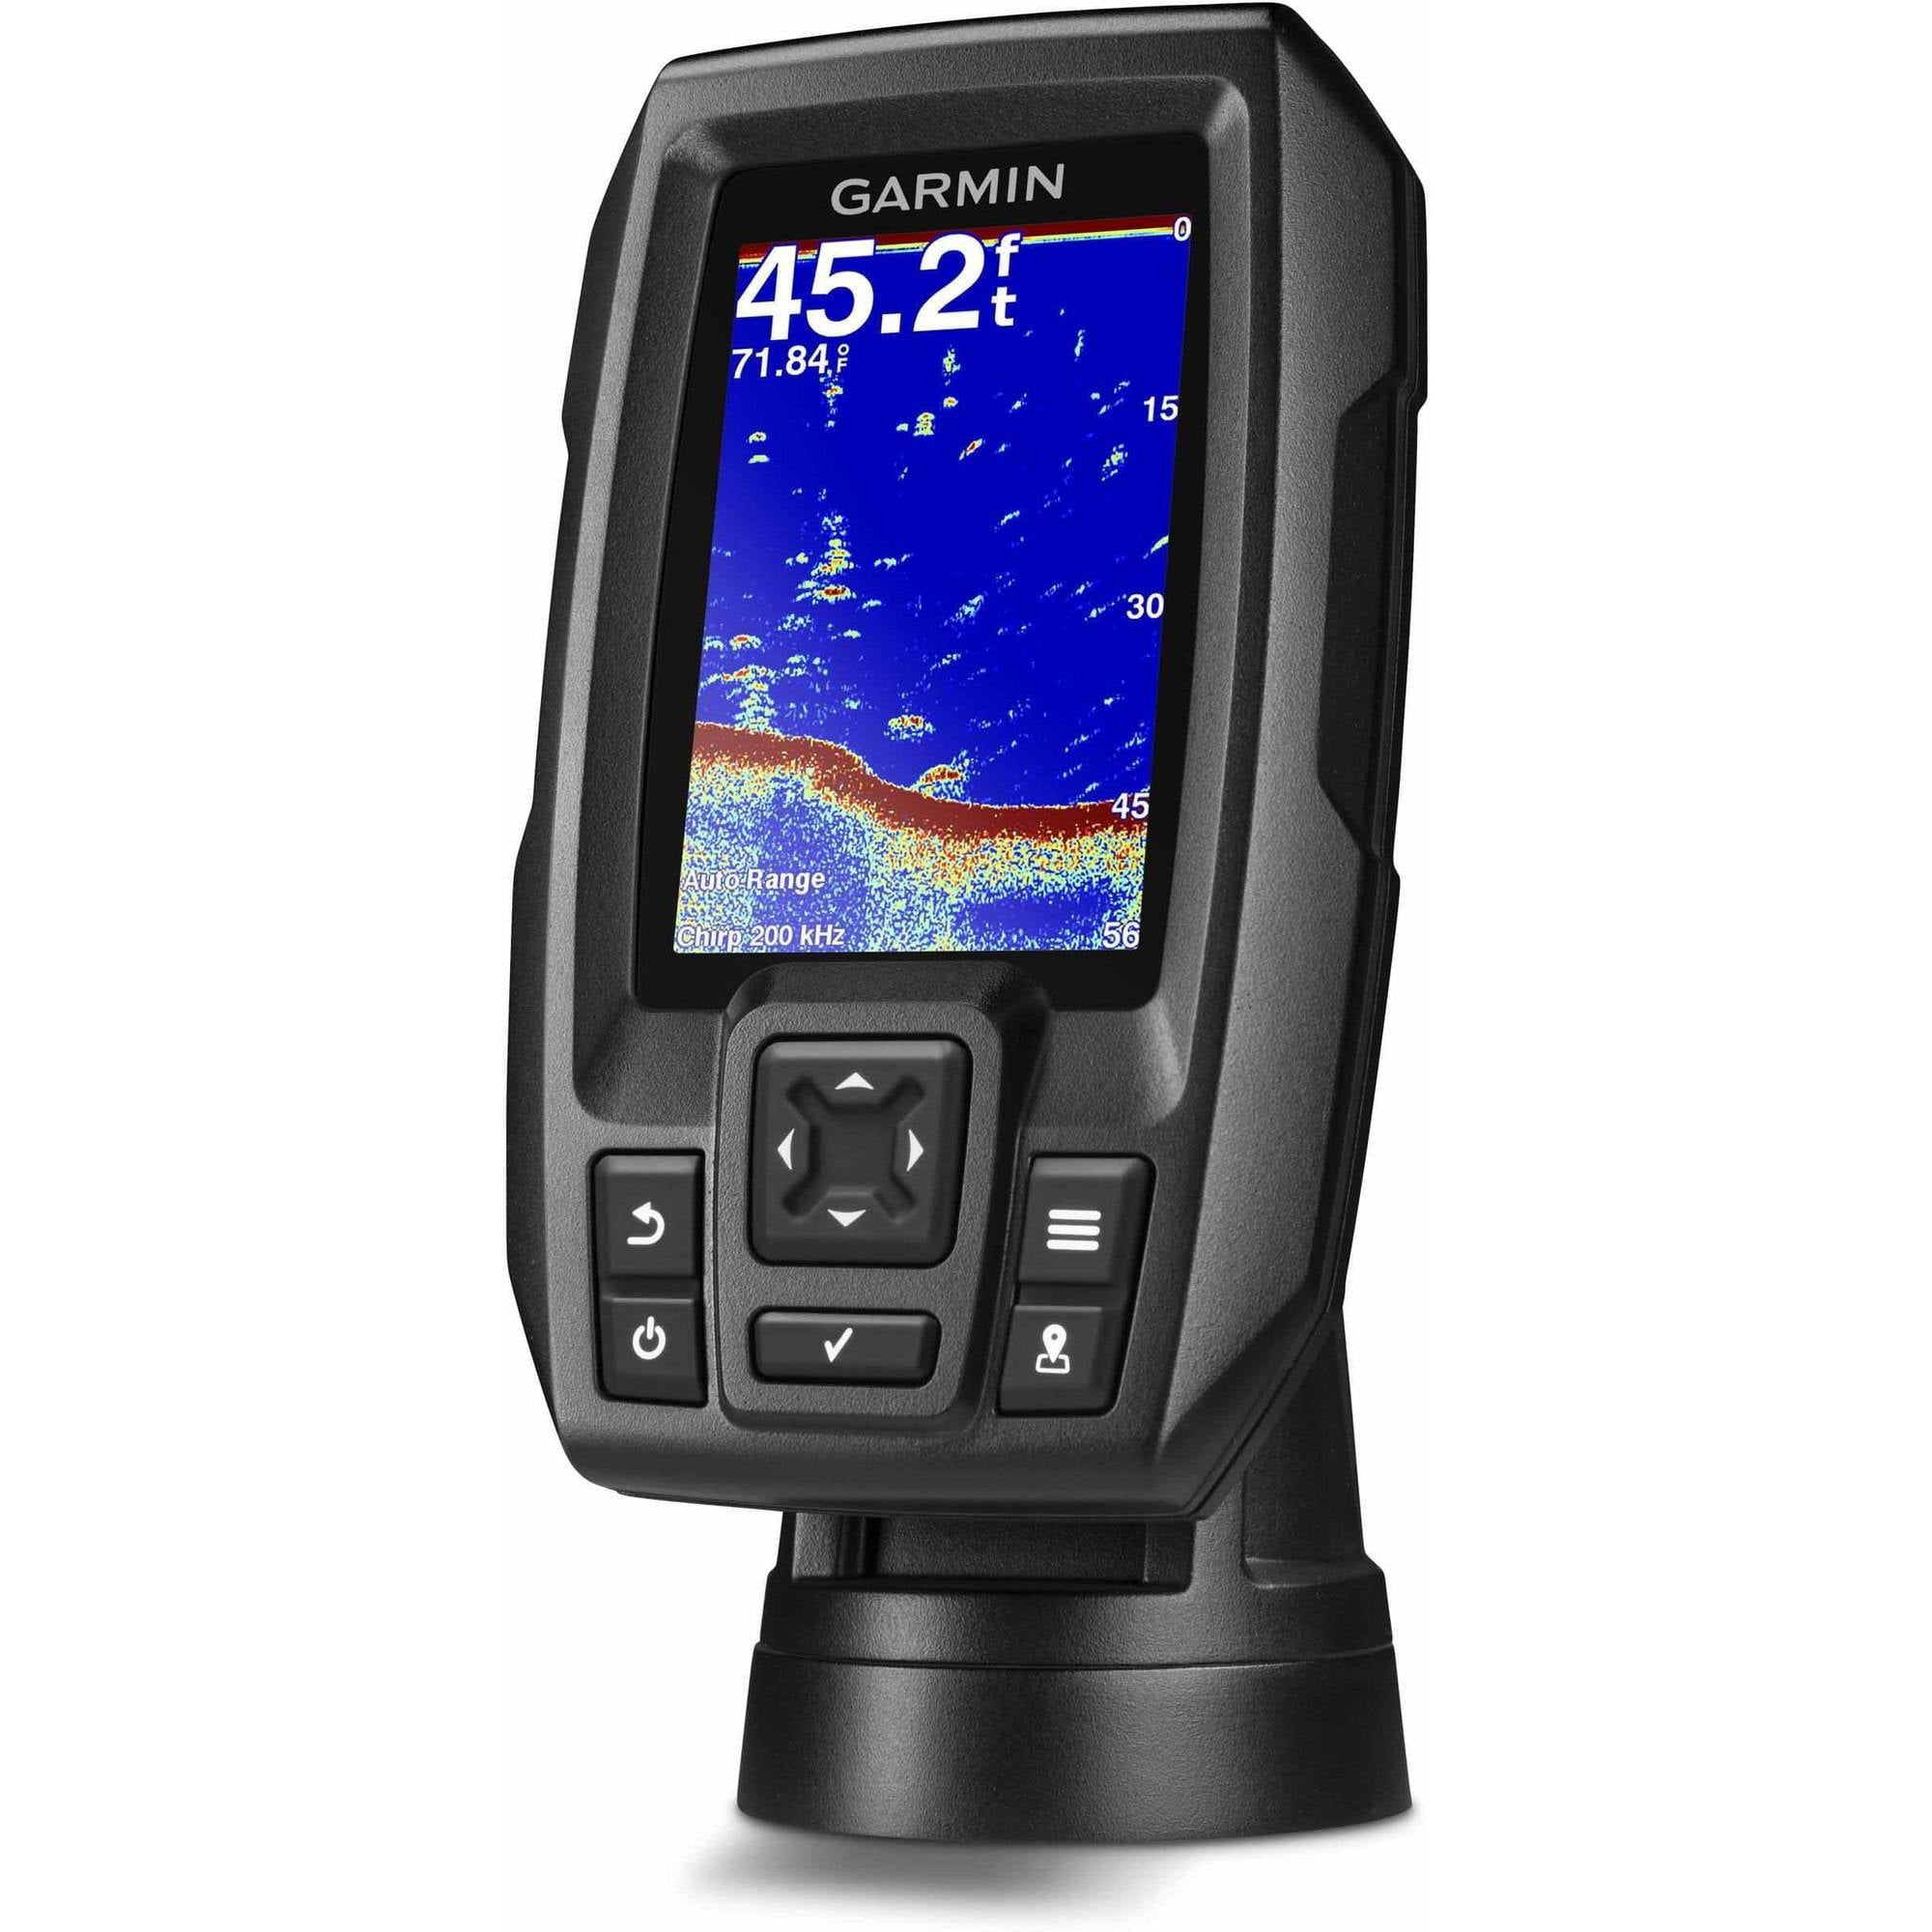 Garmin gps and fishfinder for Fish finder walmart